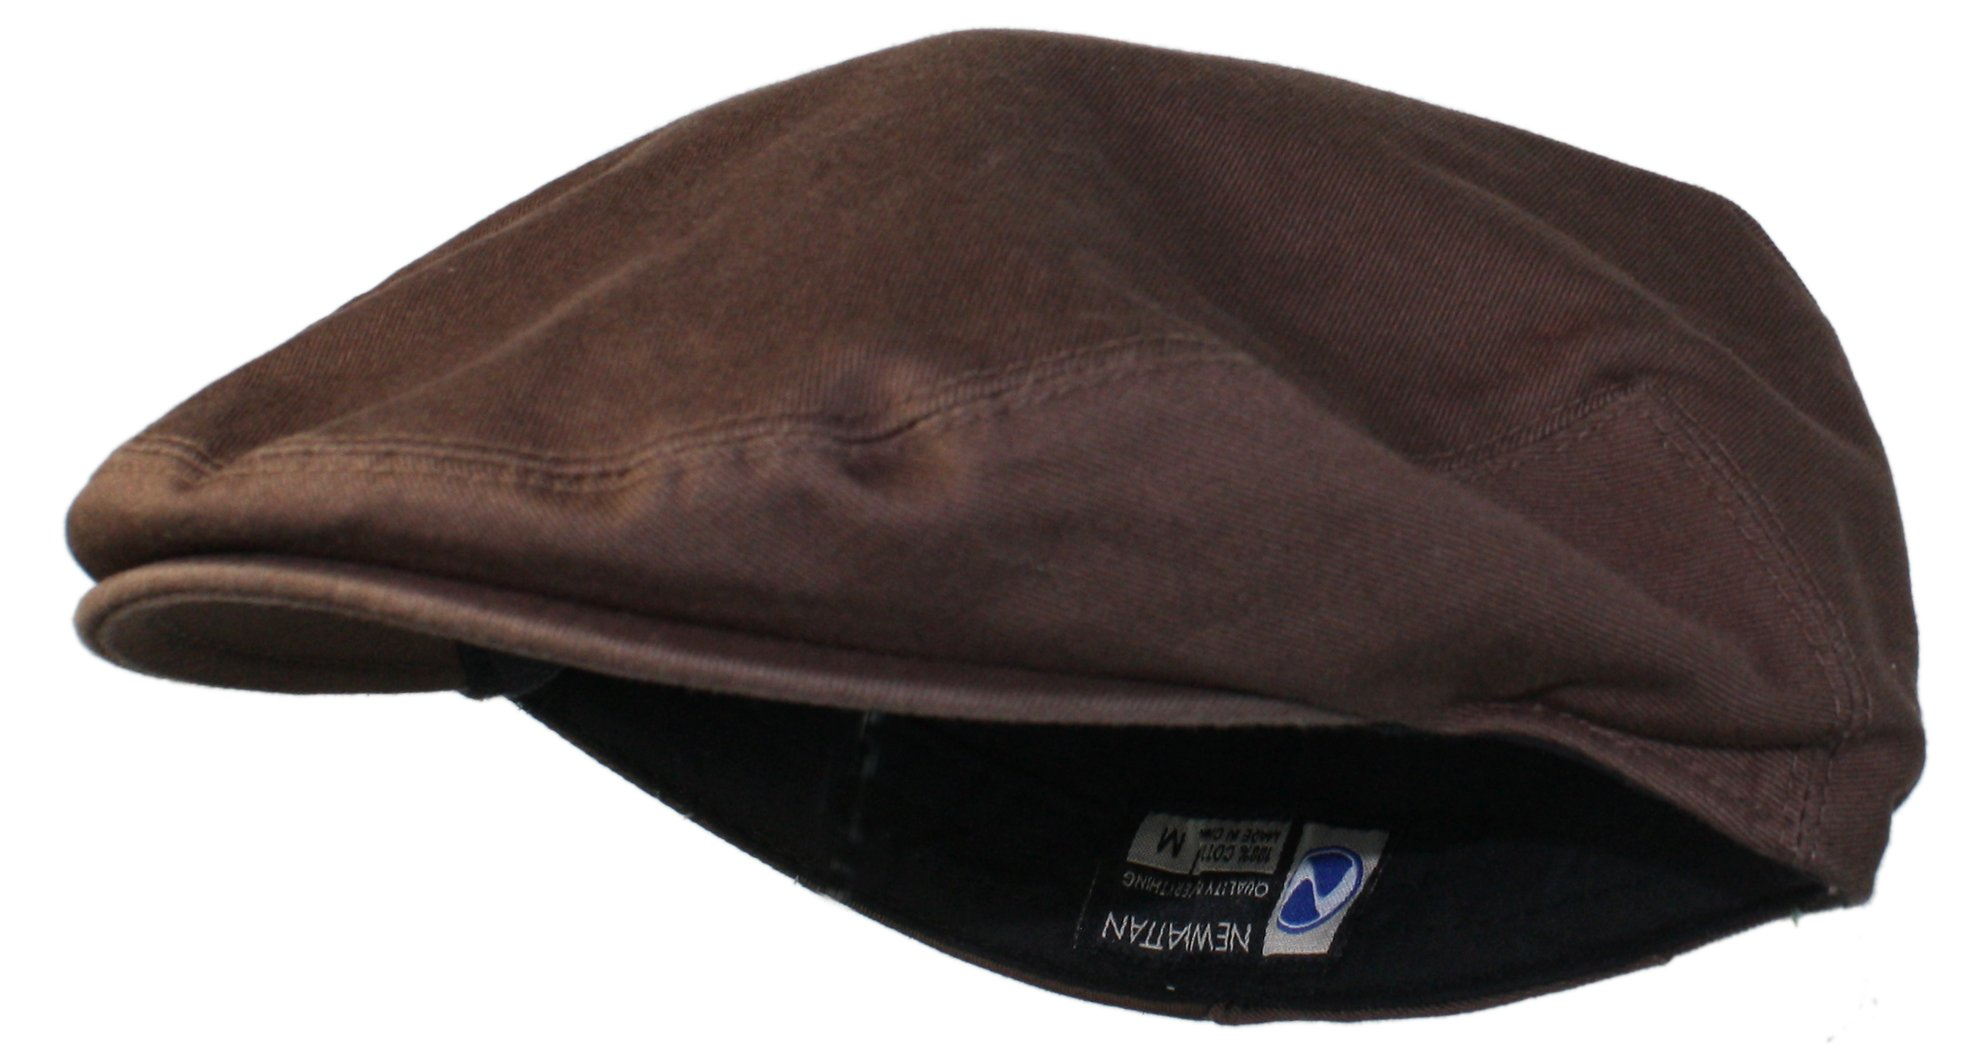 Ted and Jack - Street Easy Traditional Solid Cotton Newsboy Cap (X-Large, Chocolate Brown) by Ted and Jack